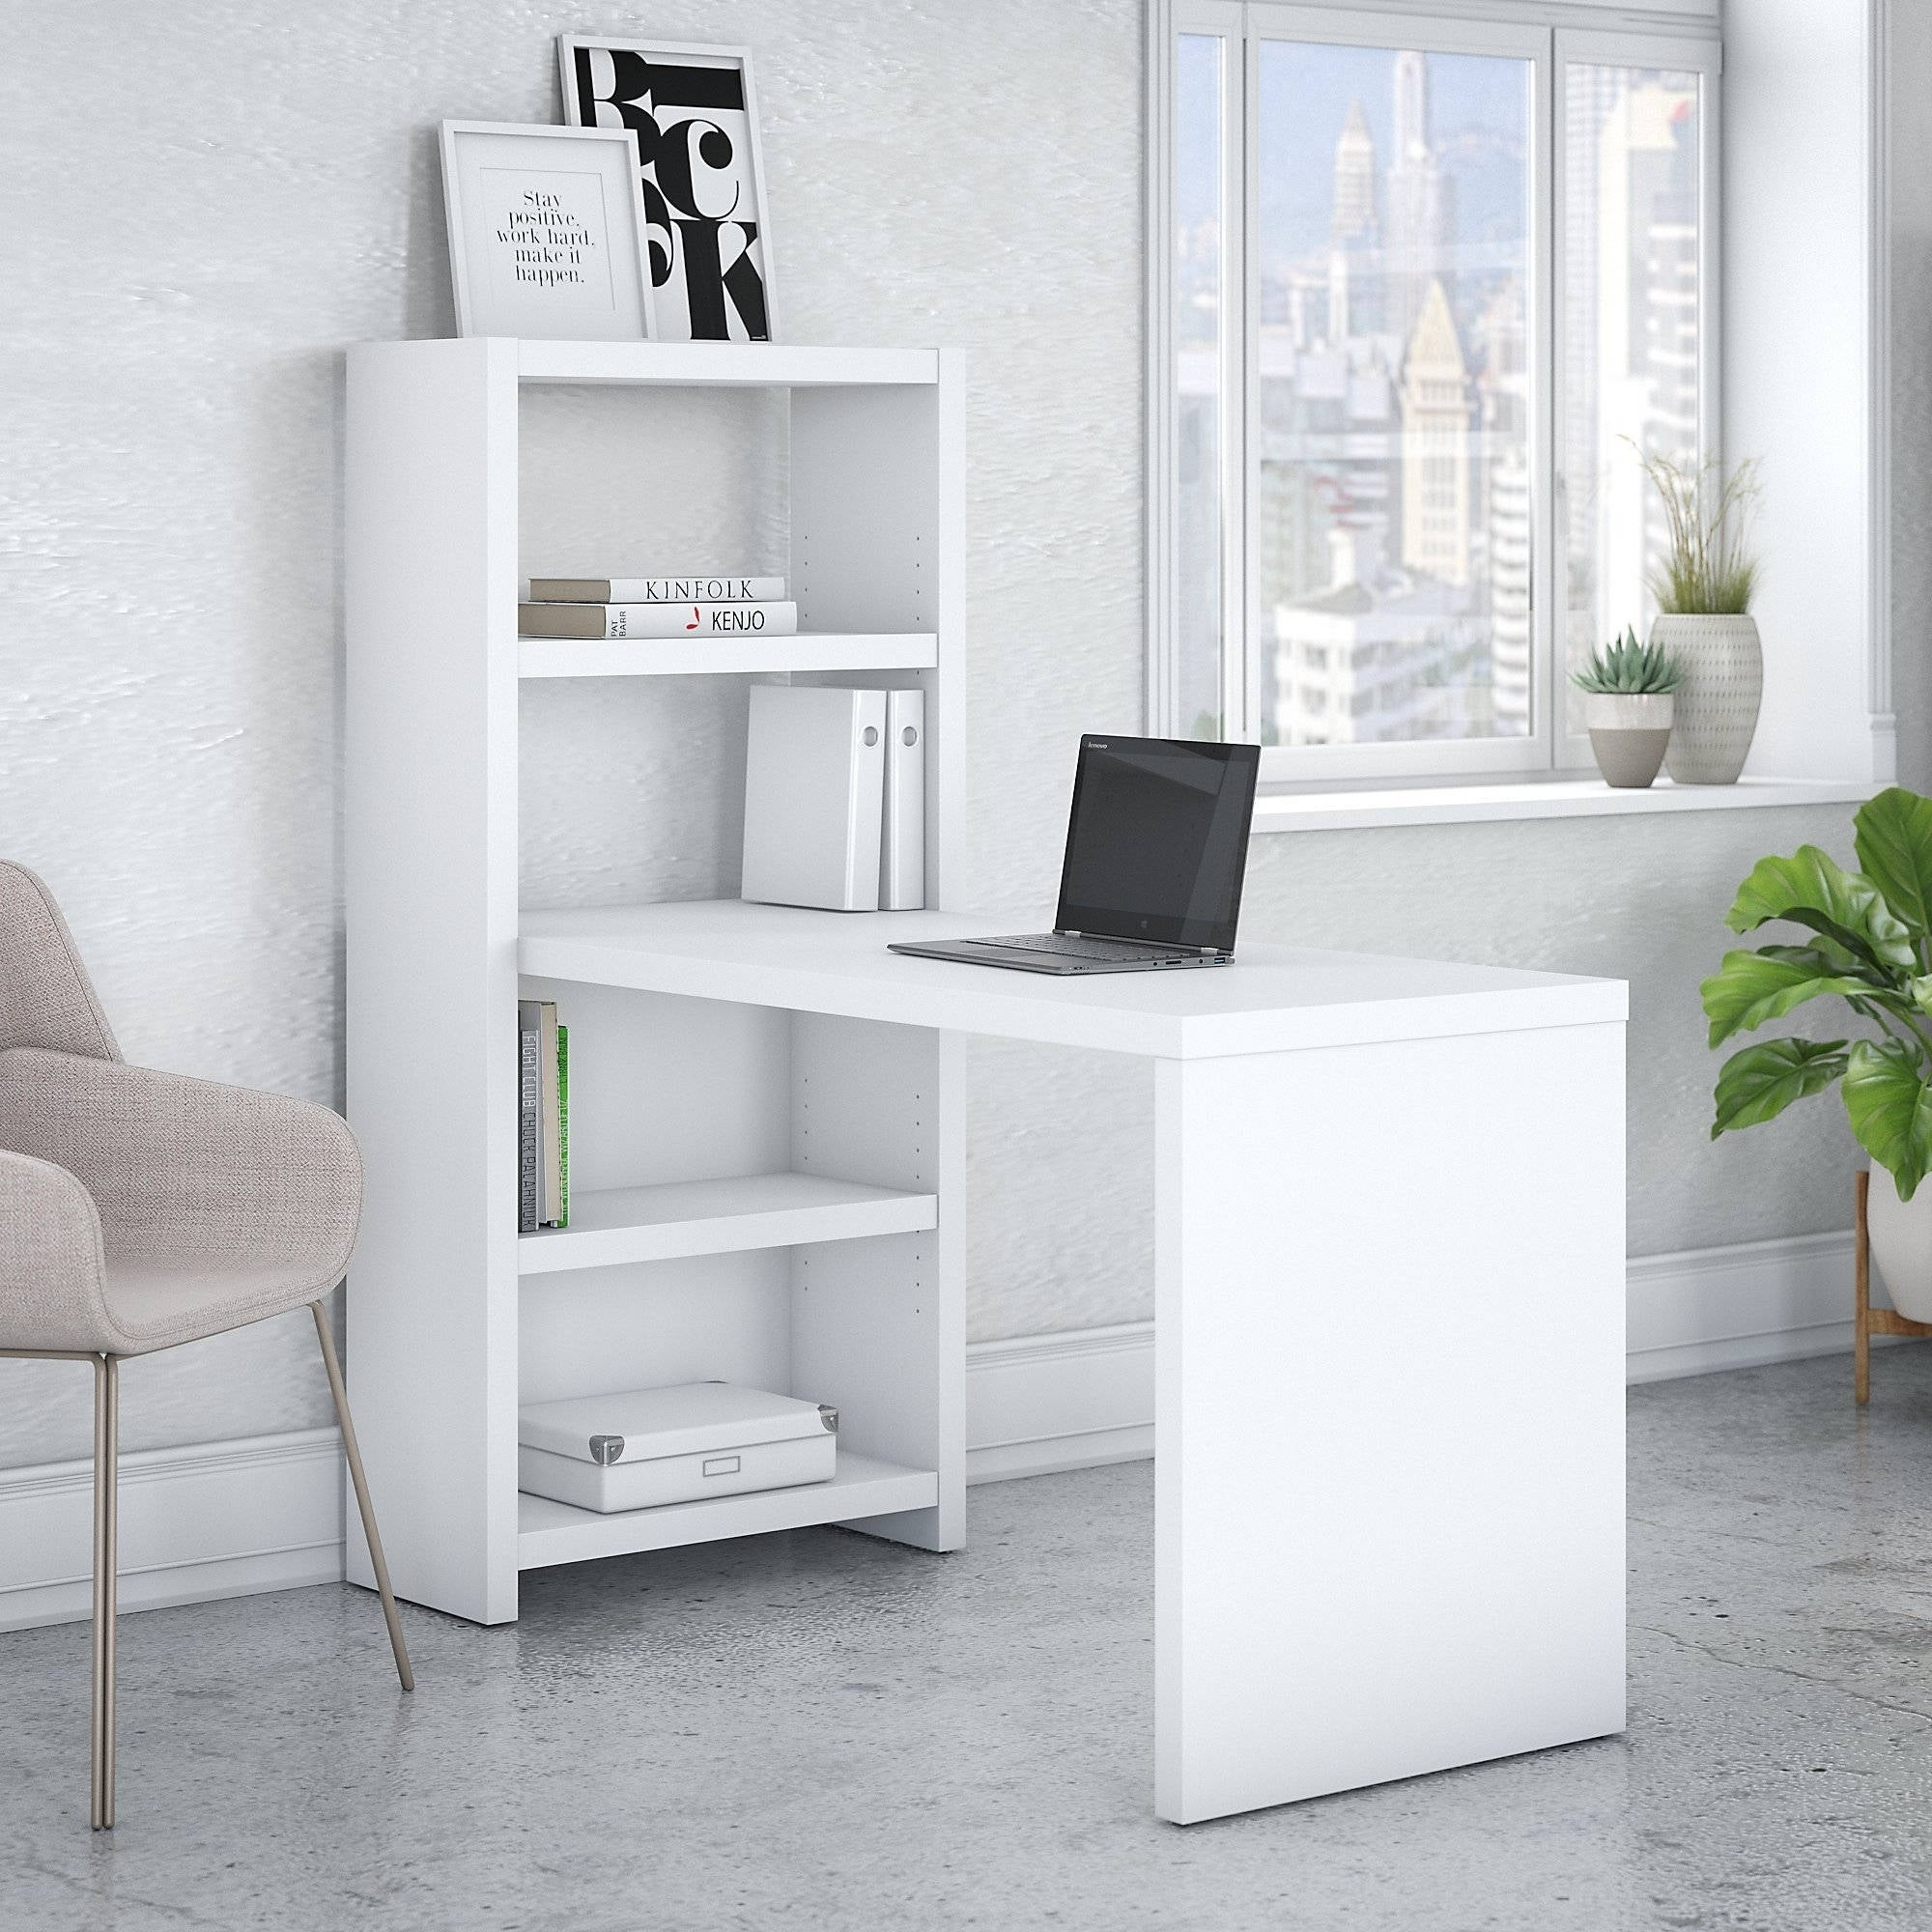 desk design table tyler signature creek return products bookcases by with item bookcase number ashley